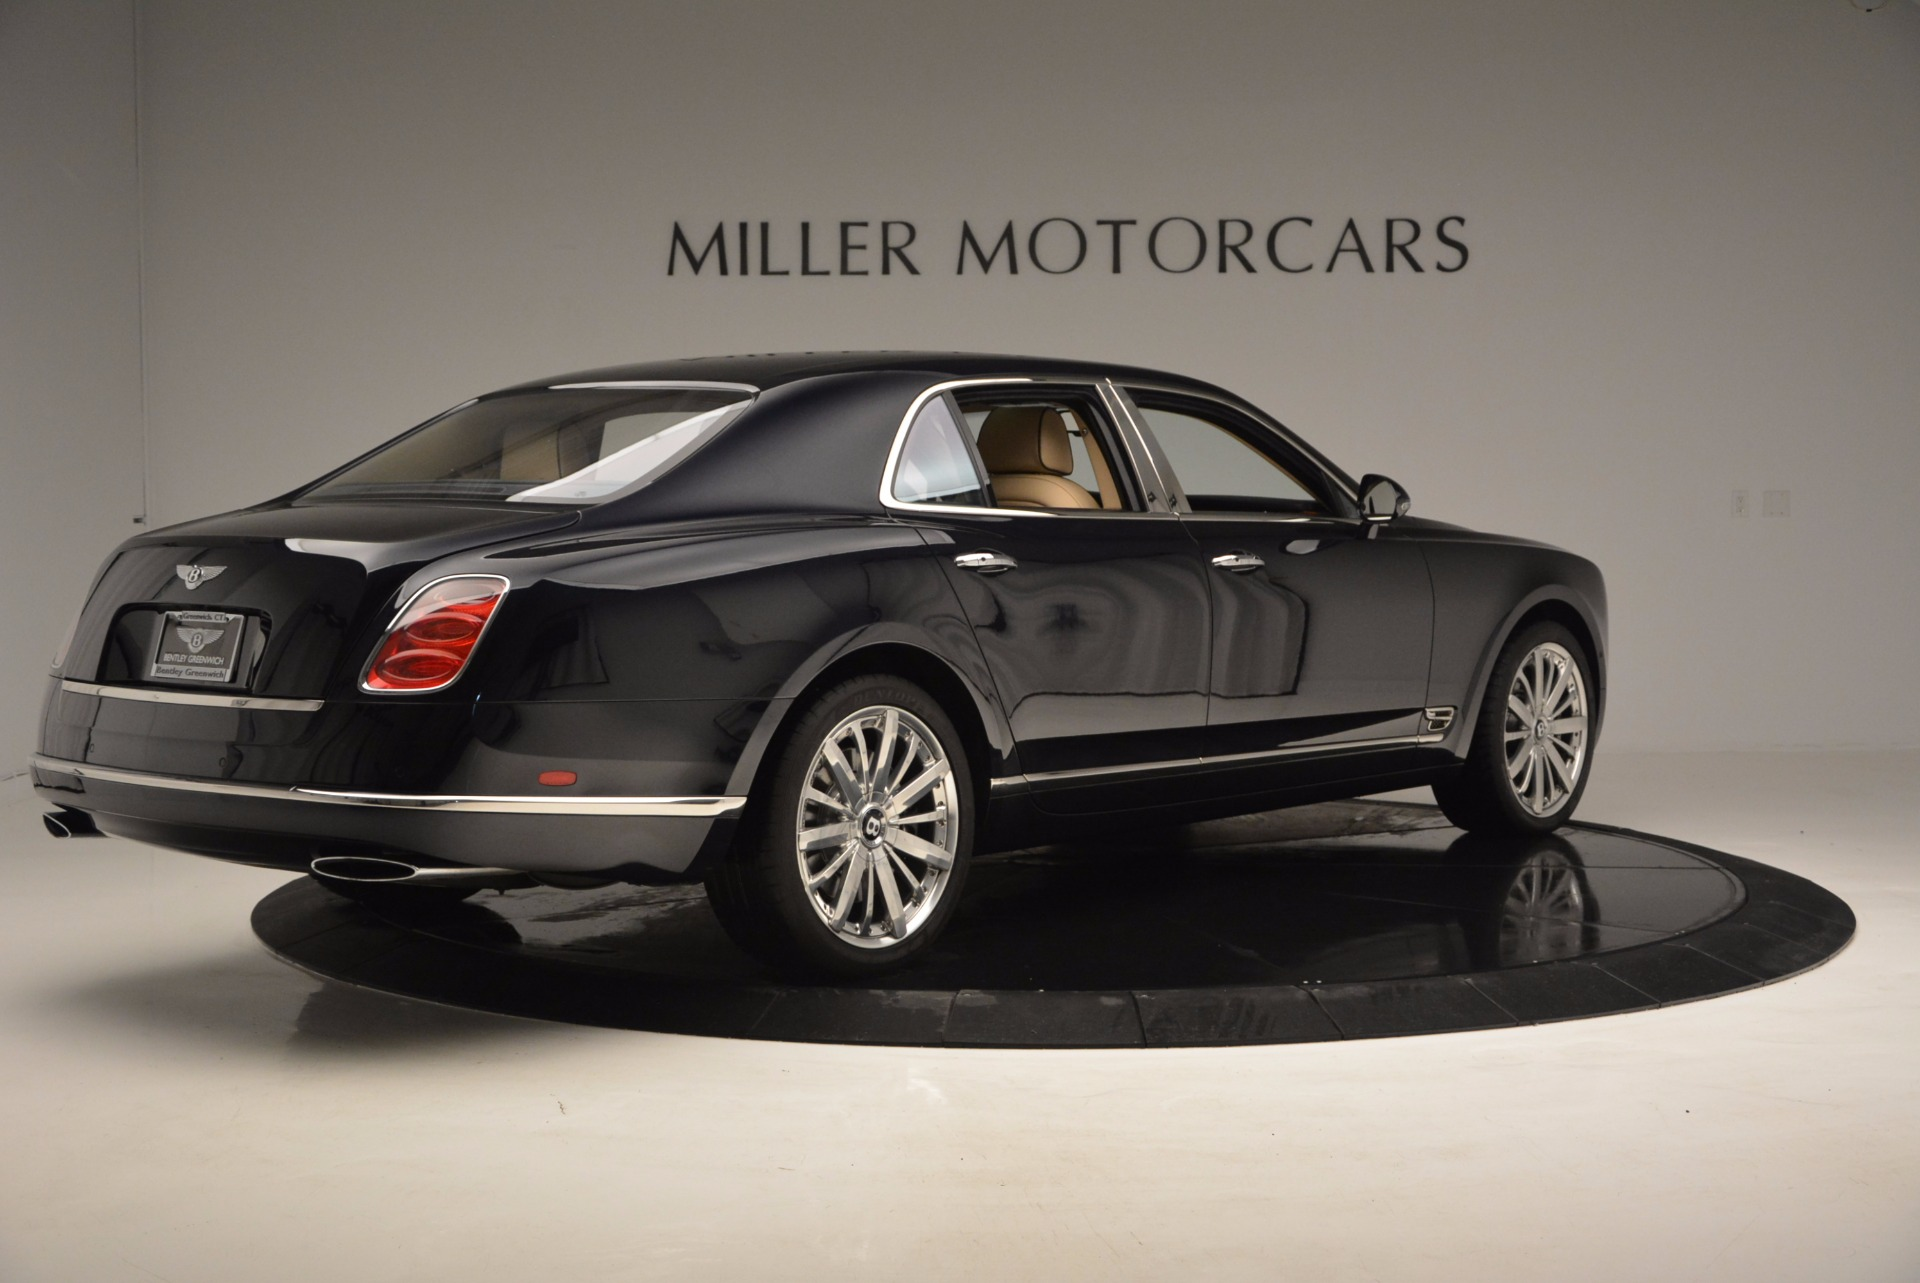 Dream motor cars luxury used cars in los angeles for Luxury pre owned motor cars